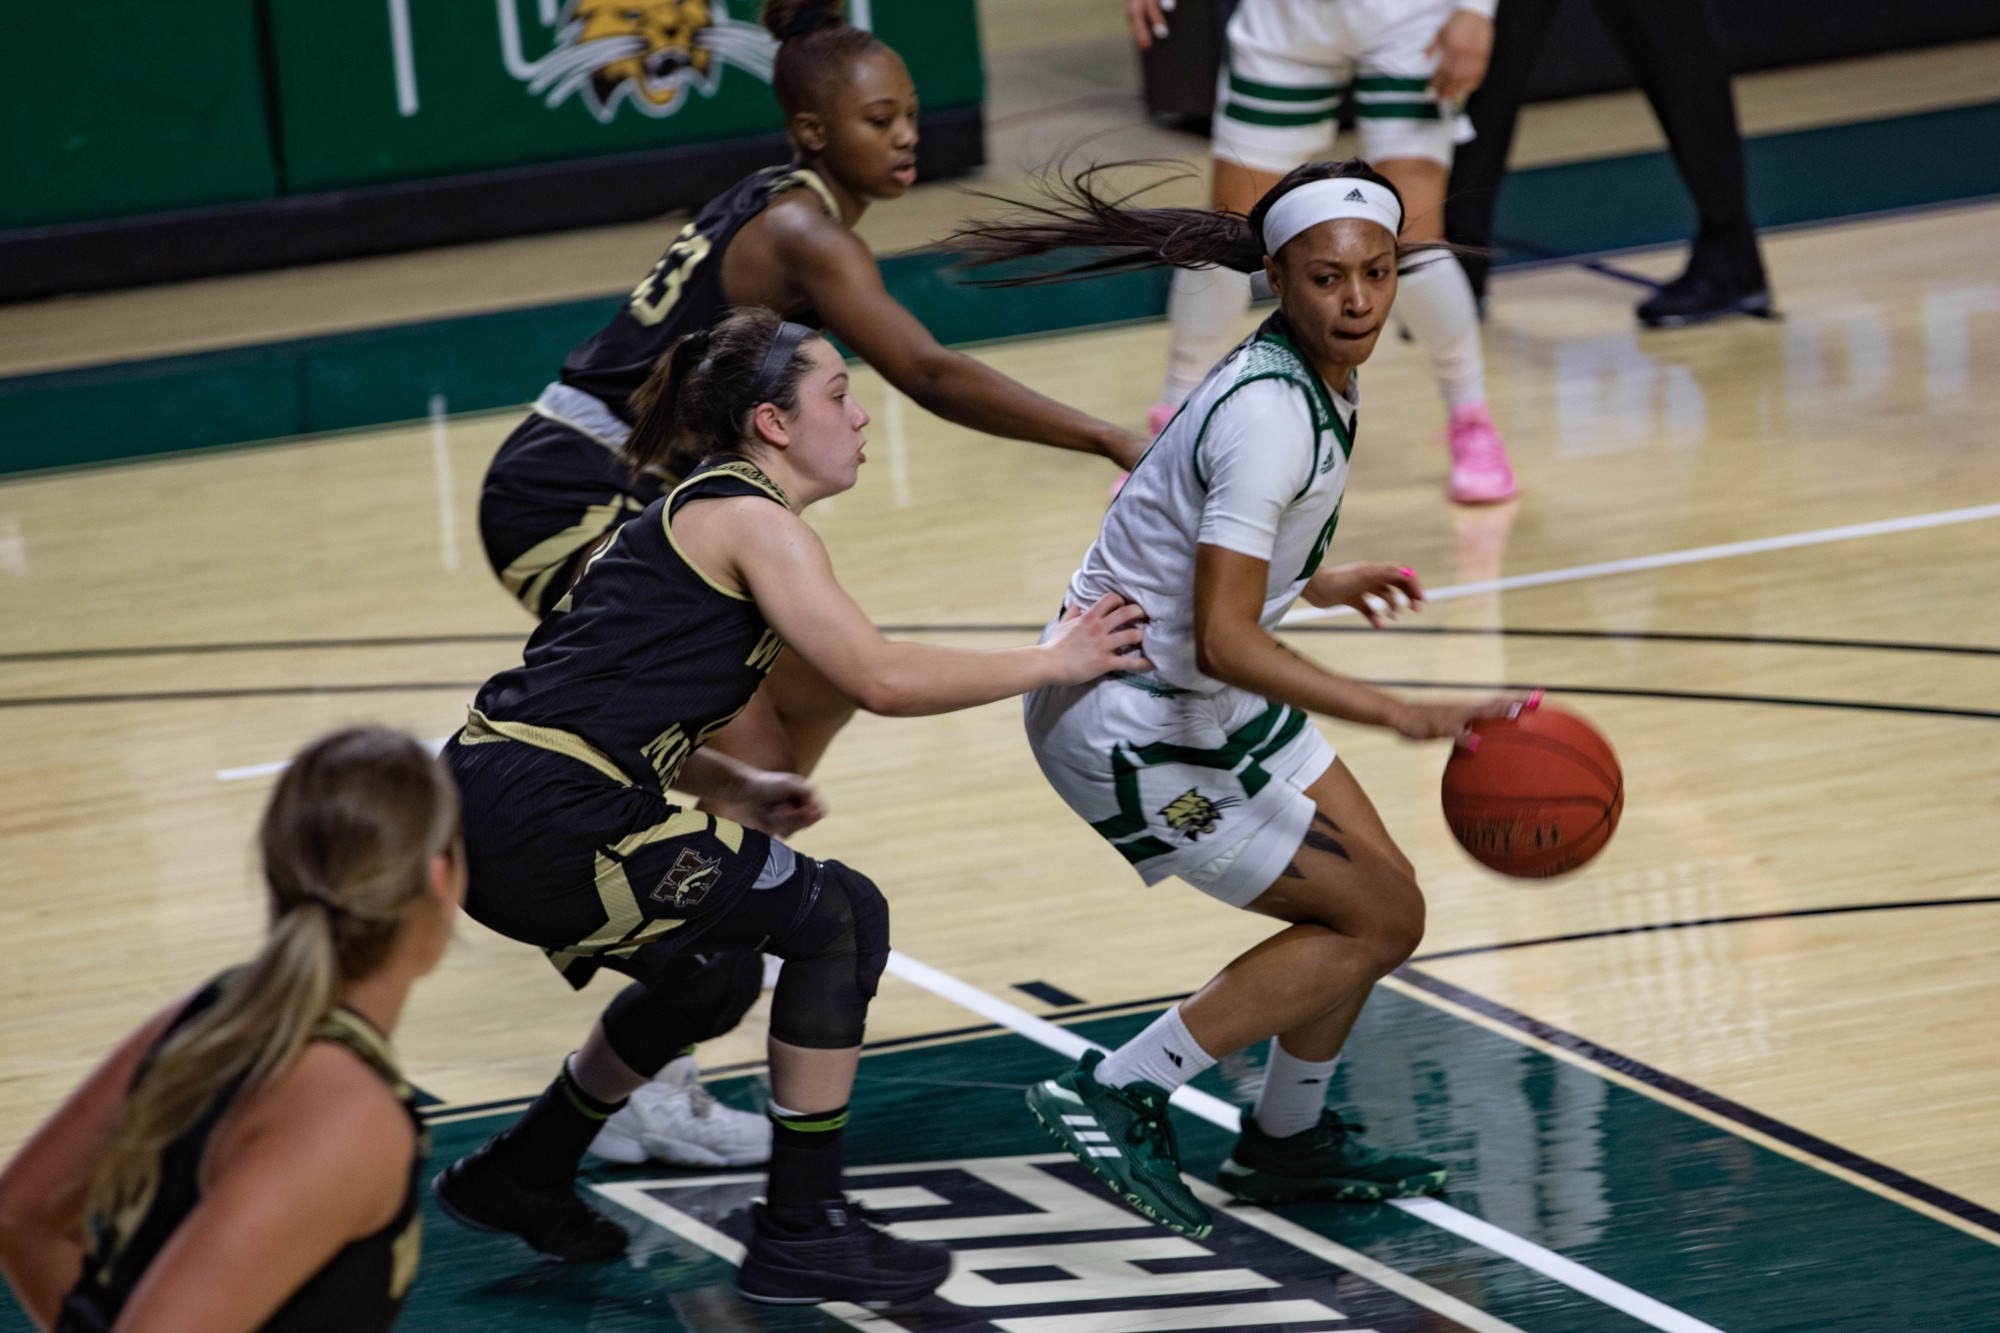 Ohio guard Cece Hooks (#1) dribbles past Western Michigan University in the second quarter of a match held at the Convocation Center on Saturday, Feb. 13, 2021.